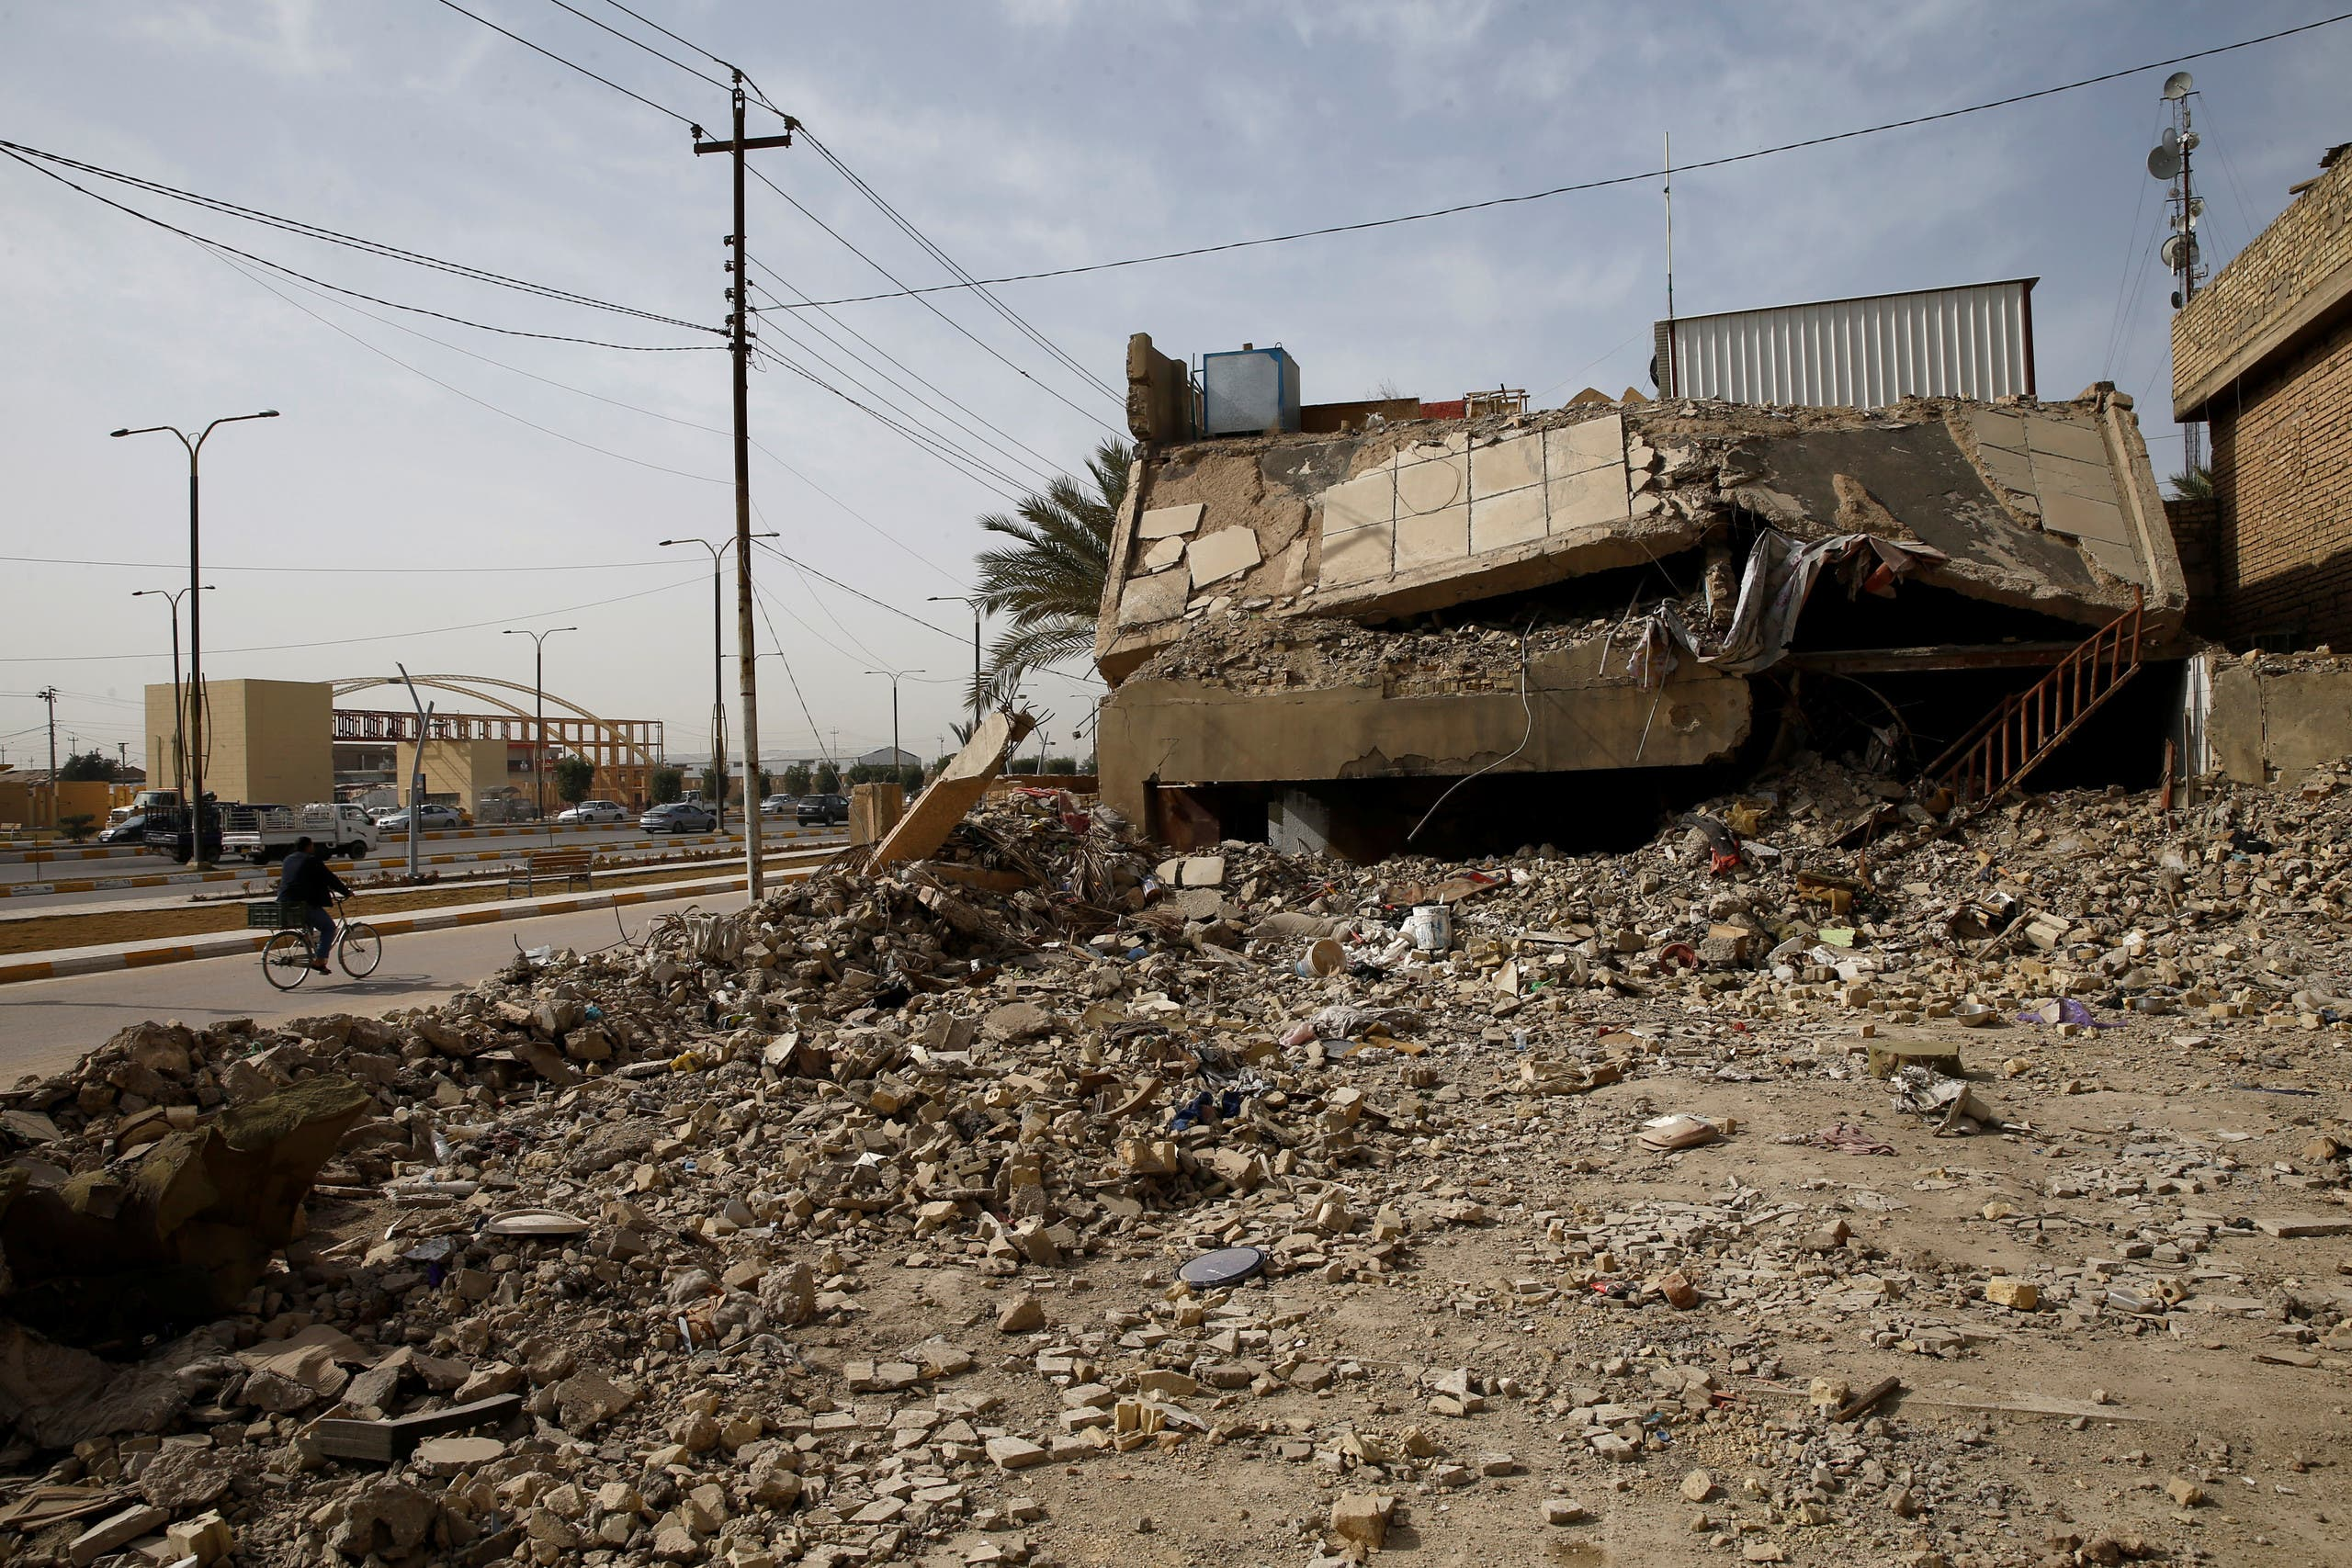 A building destroyed during past fighting with ISIS militants is seen in Fallujah, Iraq February 3, 2021. (Reuters)